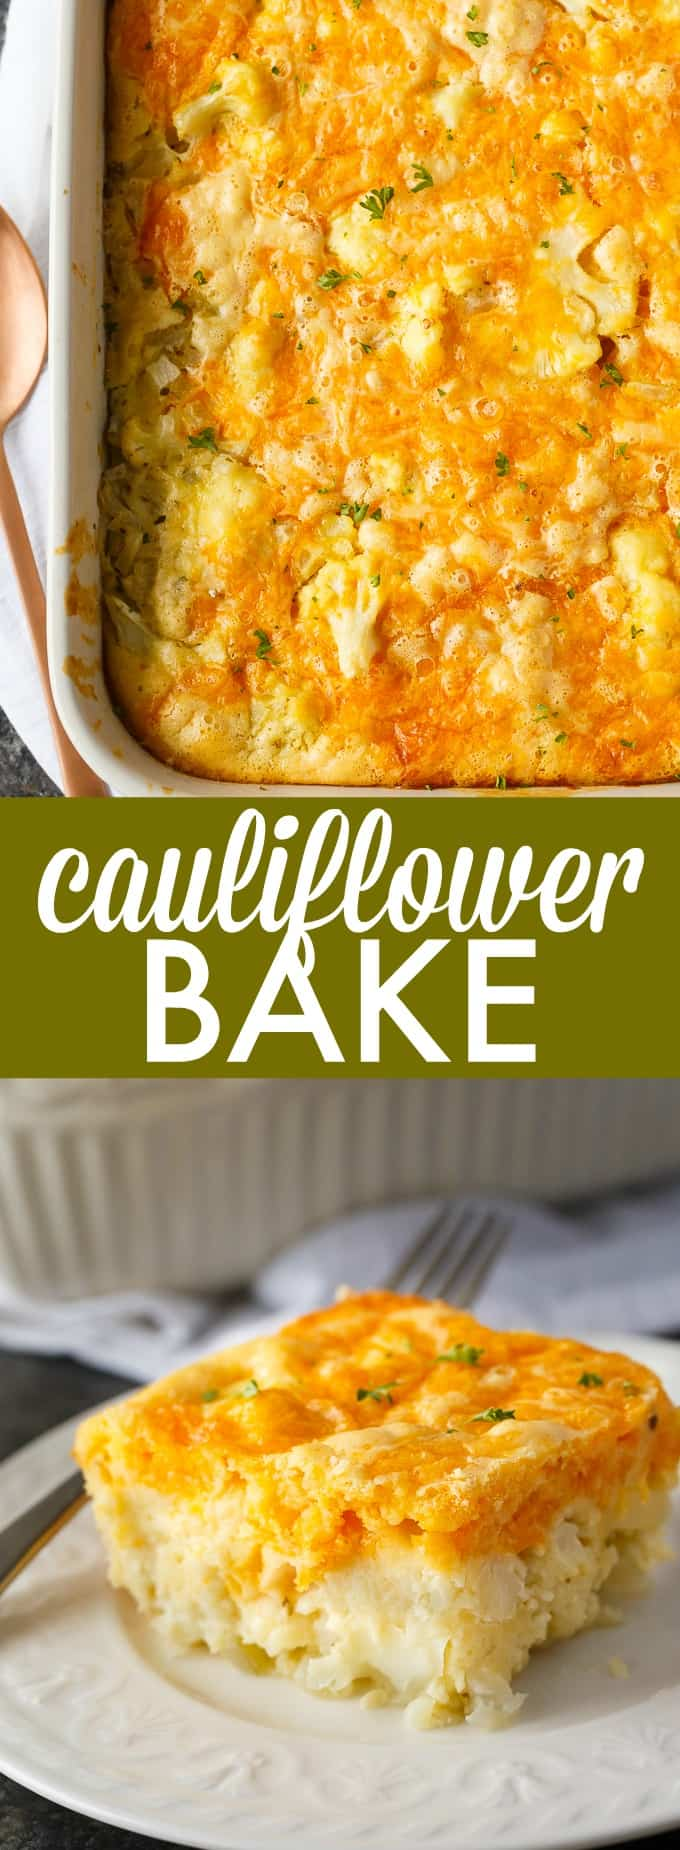 Cauliflower Bake - A cheesy and impossibly easy casserole! Even cauliflower haters love this yummy recipe.